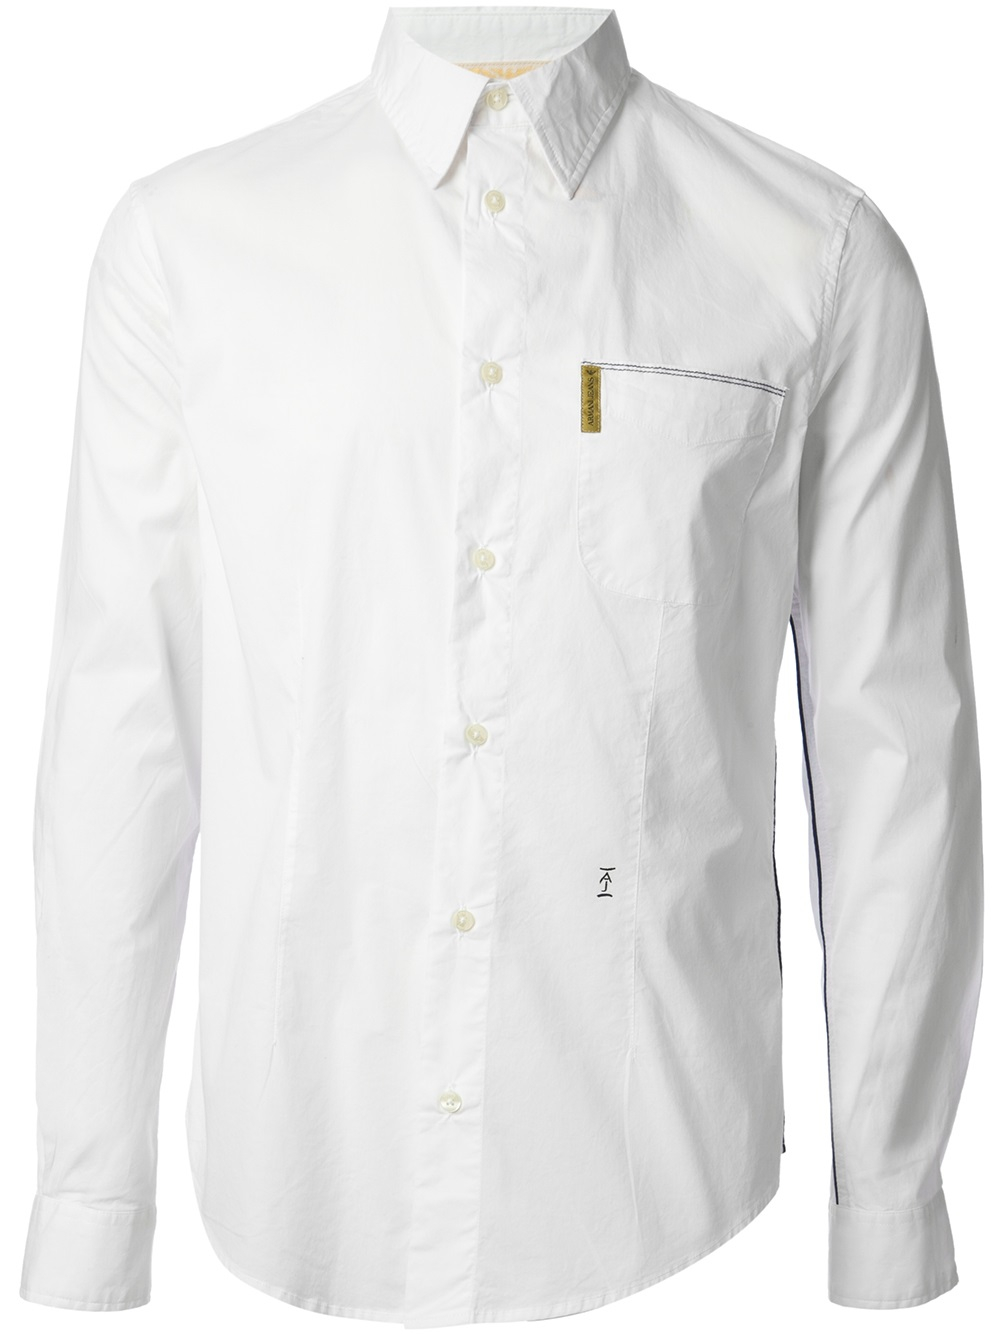 Lyst - Armani Jeans Button Down Shirt in White for Men